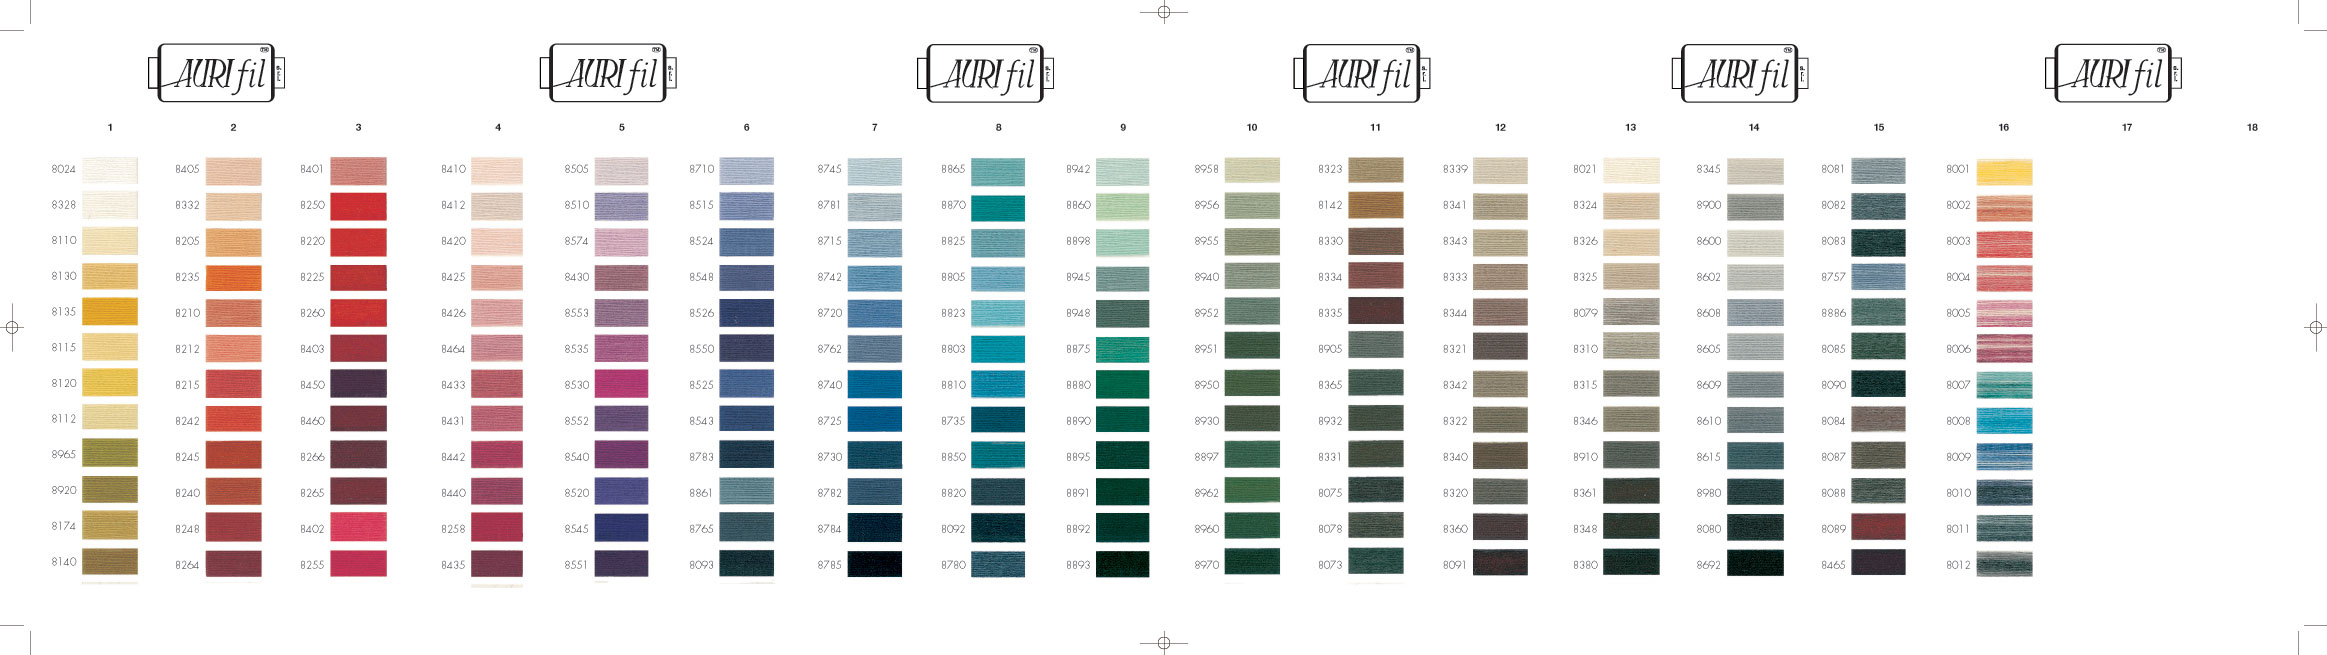 Aurifil lana wool threads bytowne threads view the lana wool colour chart visit the main aurifil web site for additional tips and suggestions nvjuhfo Choice Image